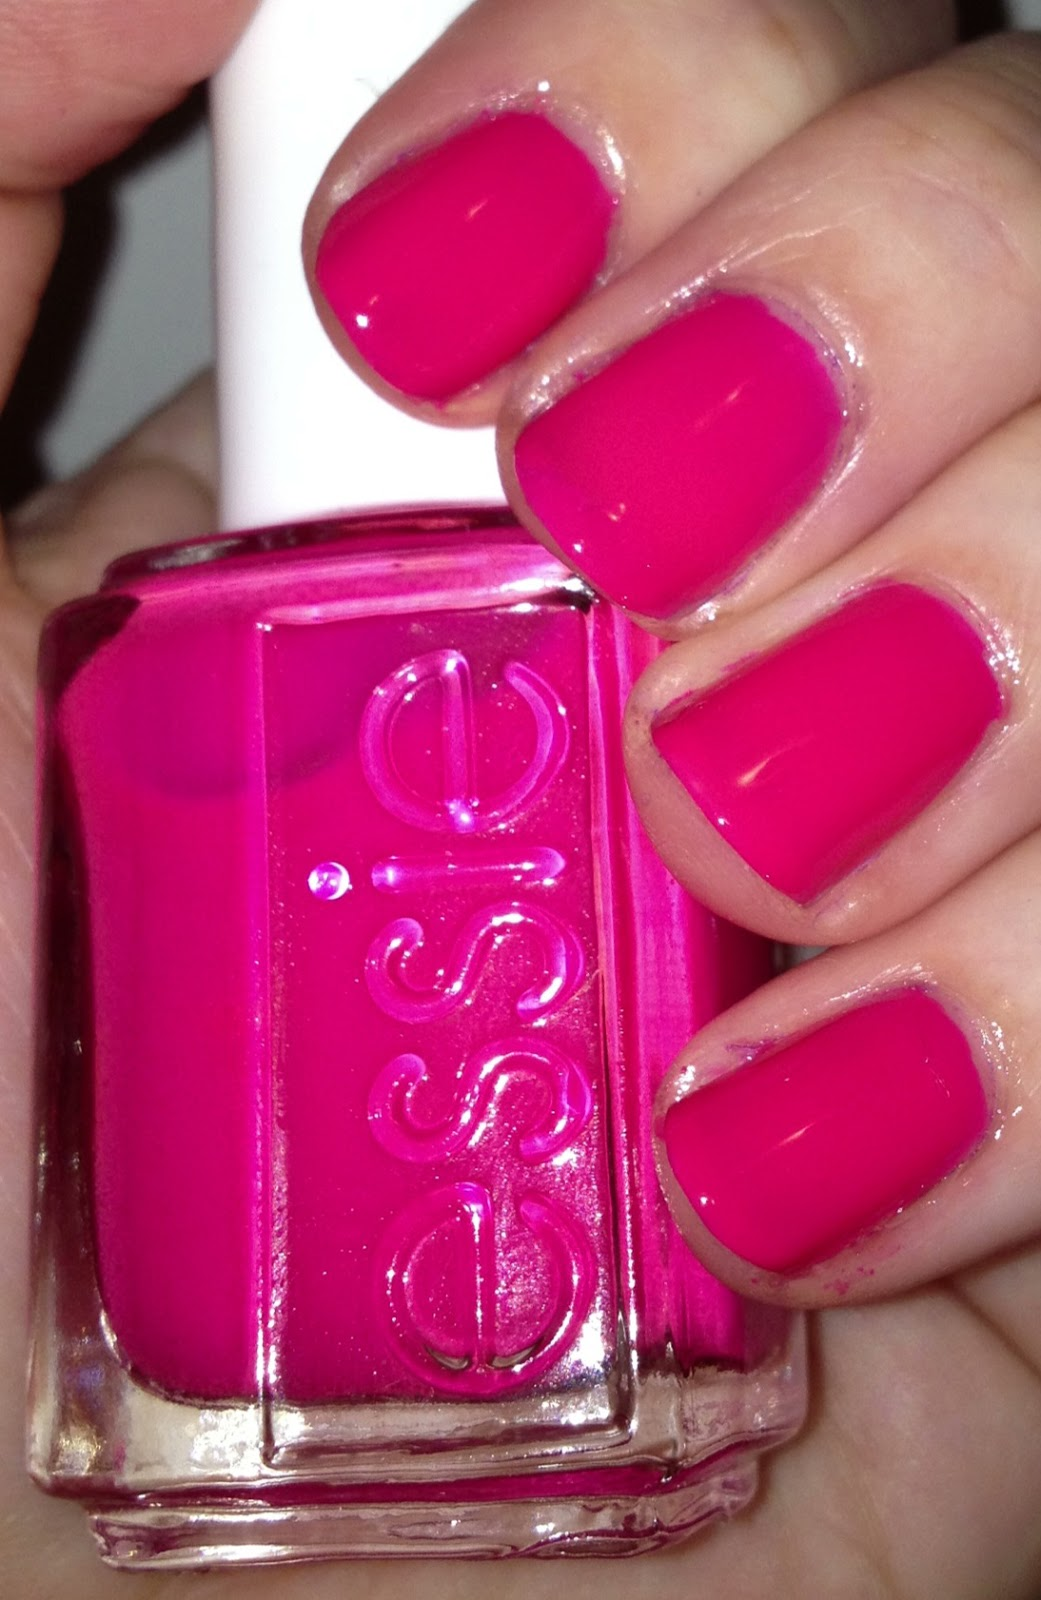 The Beauty Of Life: Essie Nail Polish Swatches: Neons